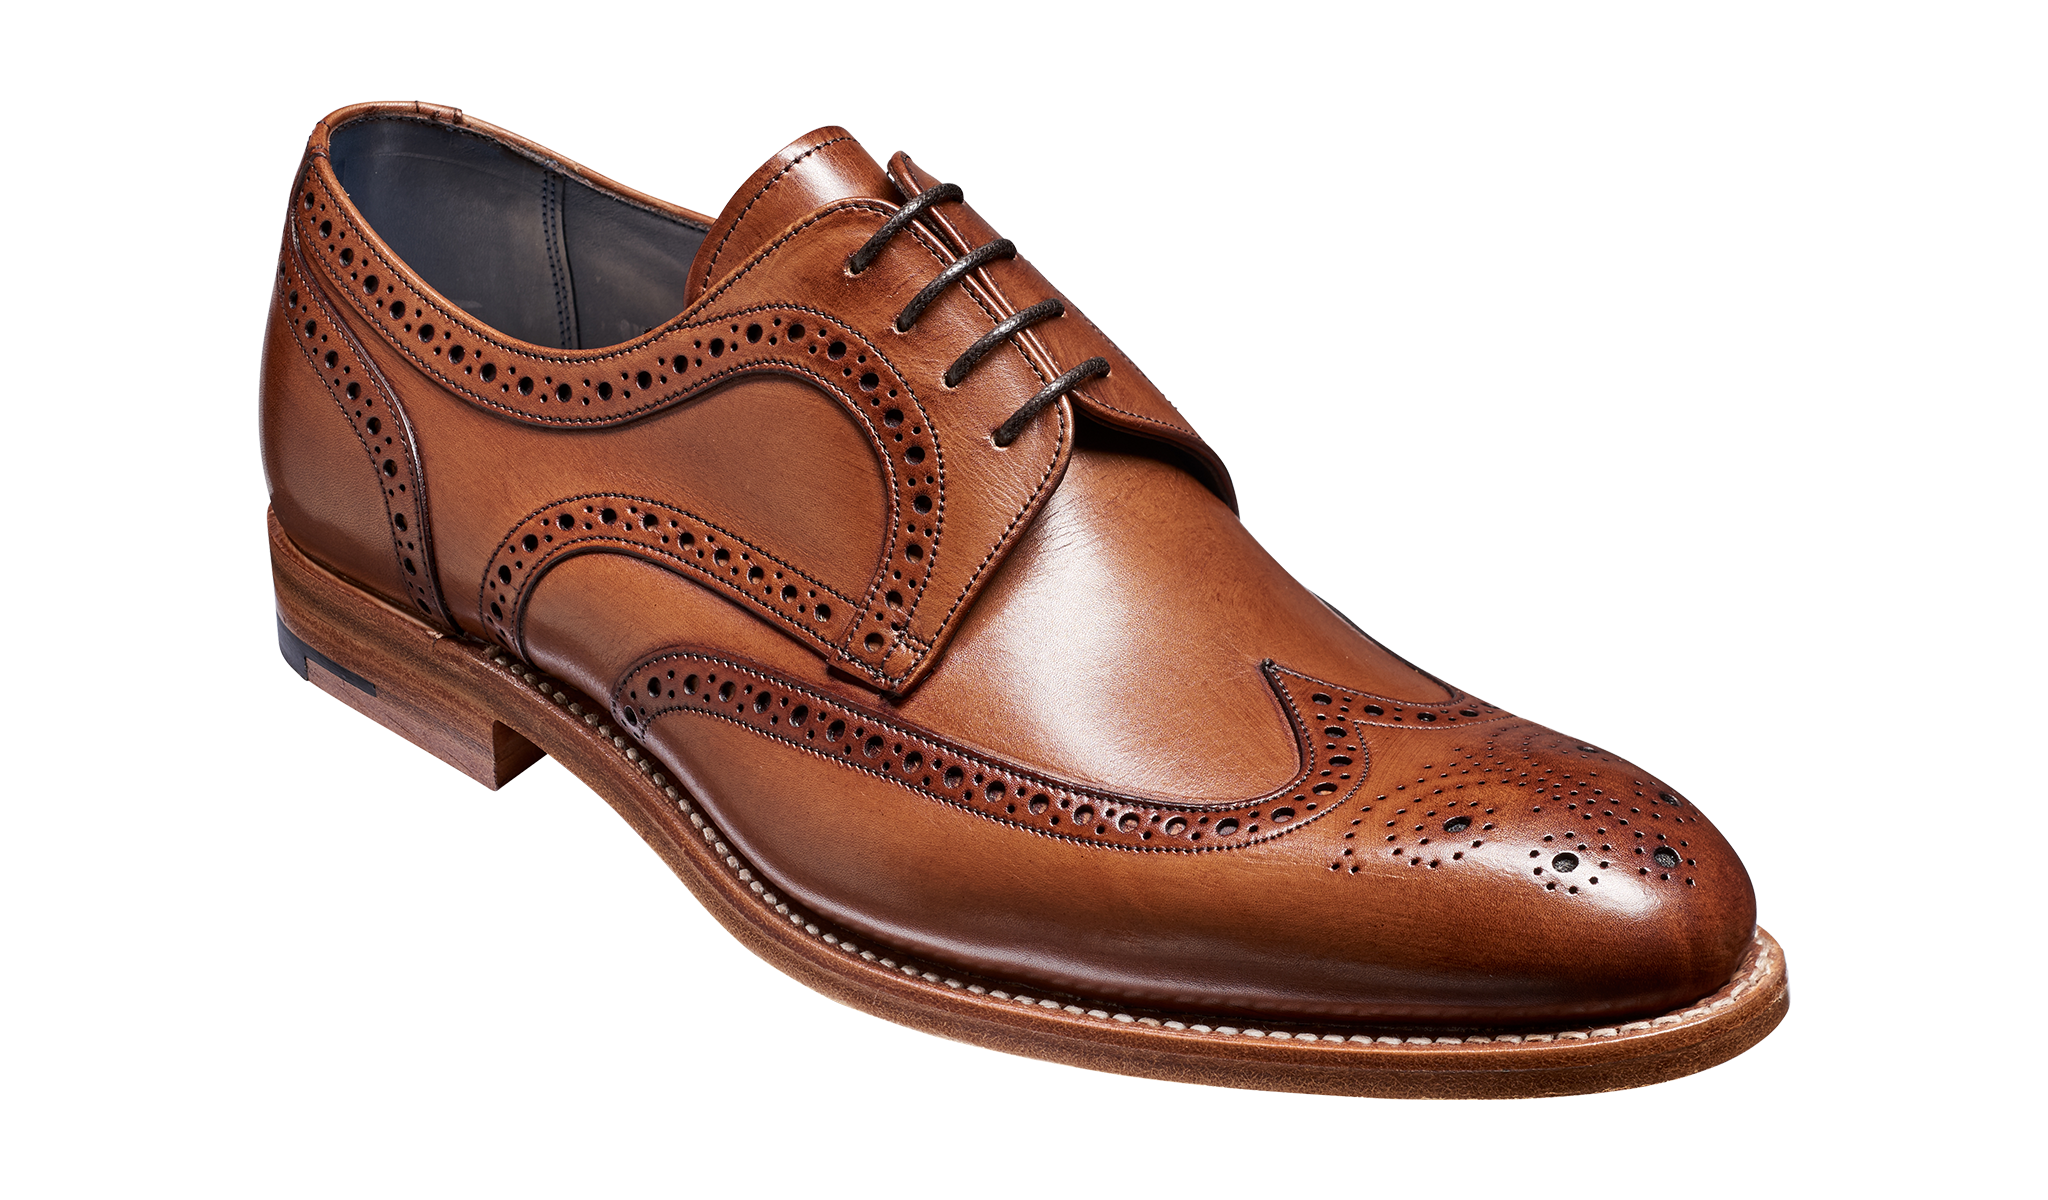 Victor - A brown hand painted men's derby by Barker Shoes.